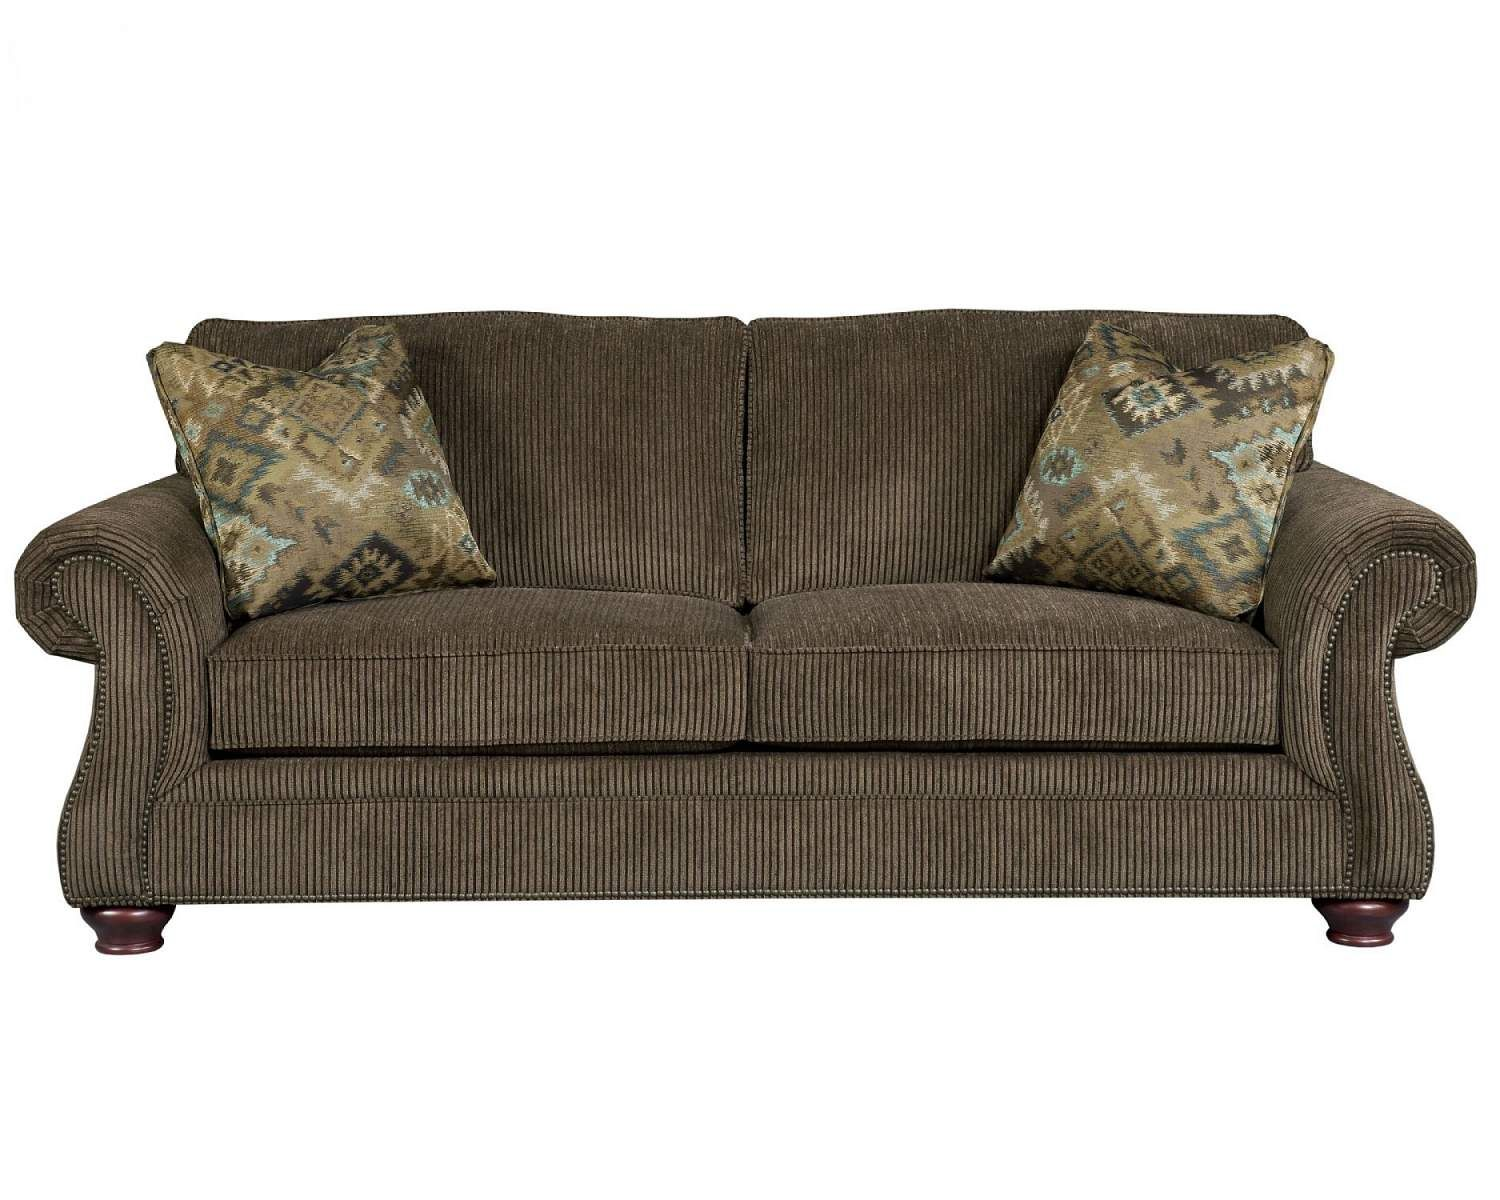 Strange Broyhill Sofa Ffo Home Space Furniture Sofa Living Dailytribune Chair Design For Home Dailytribuneorg